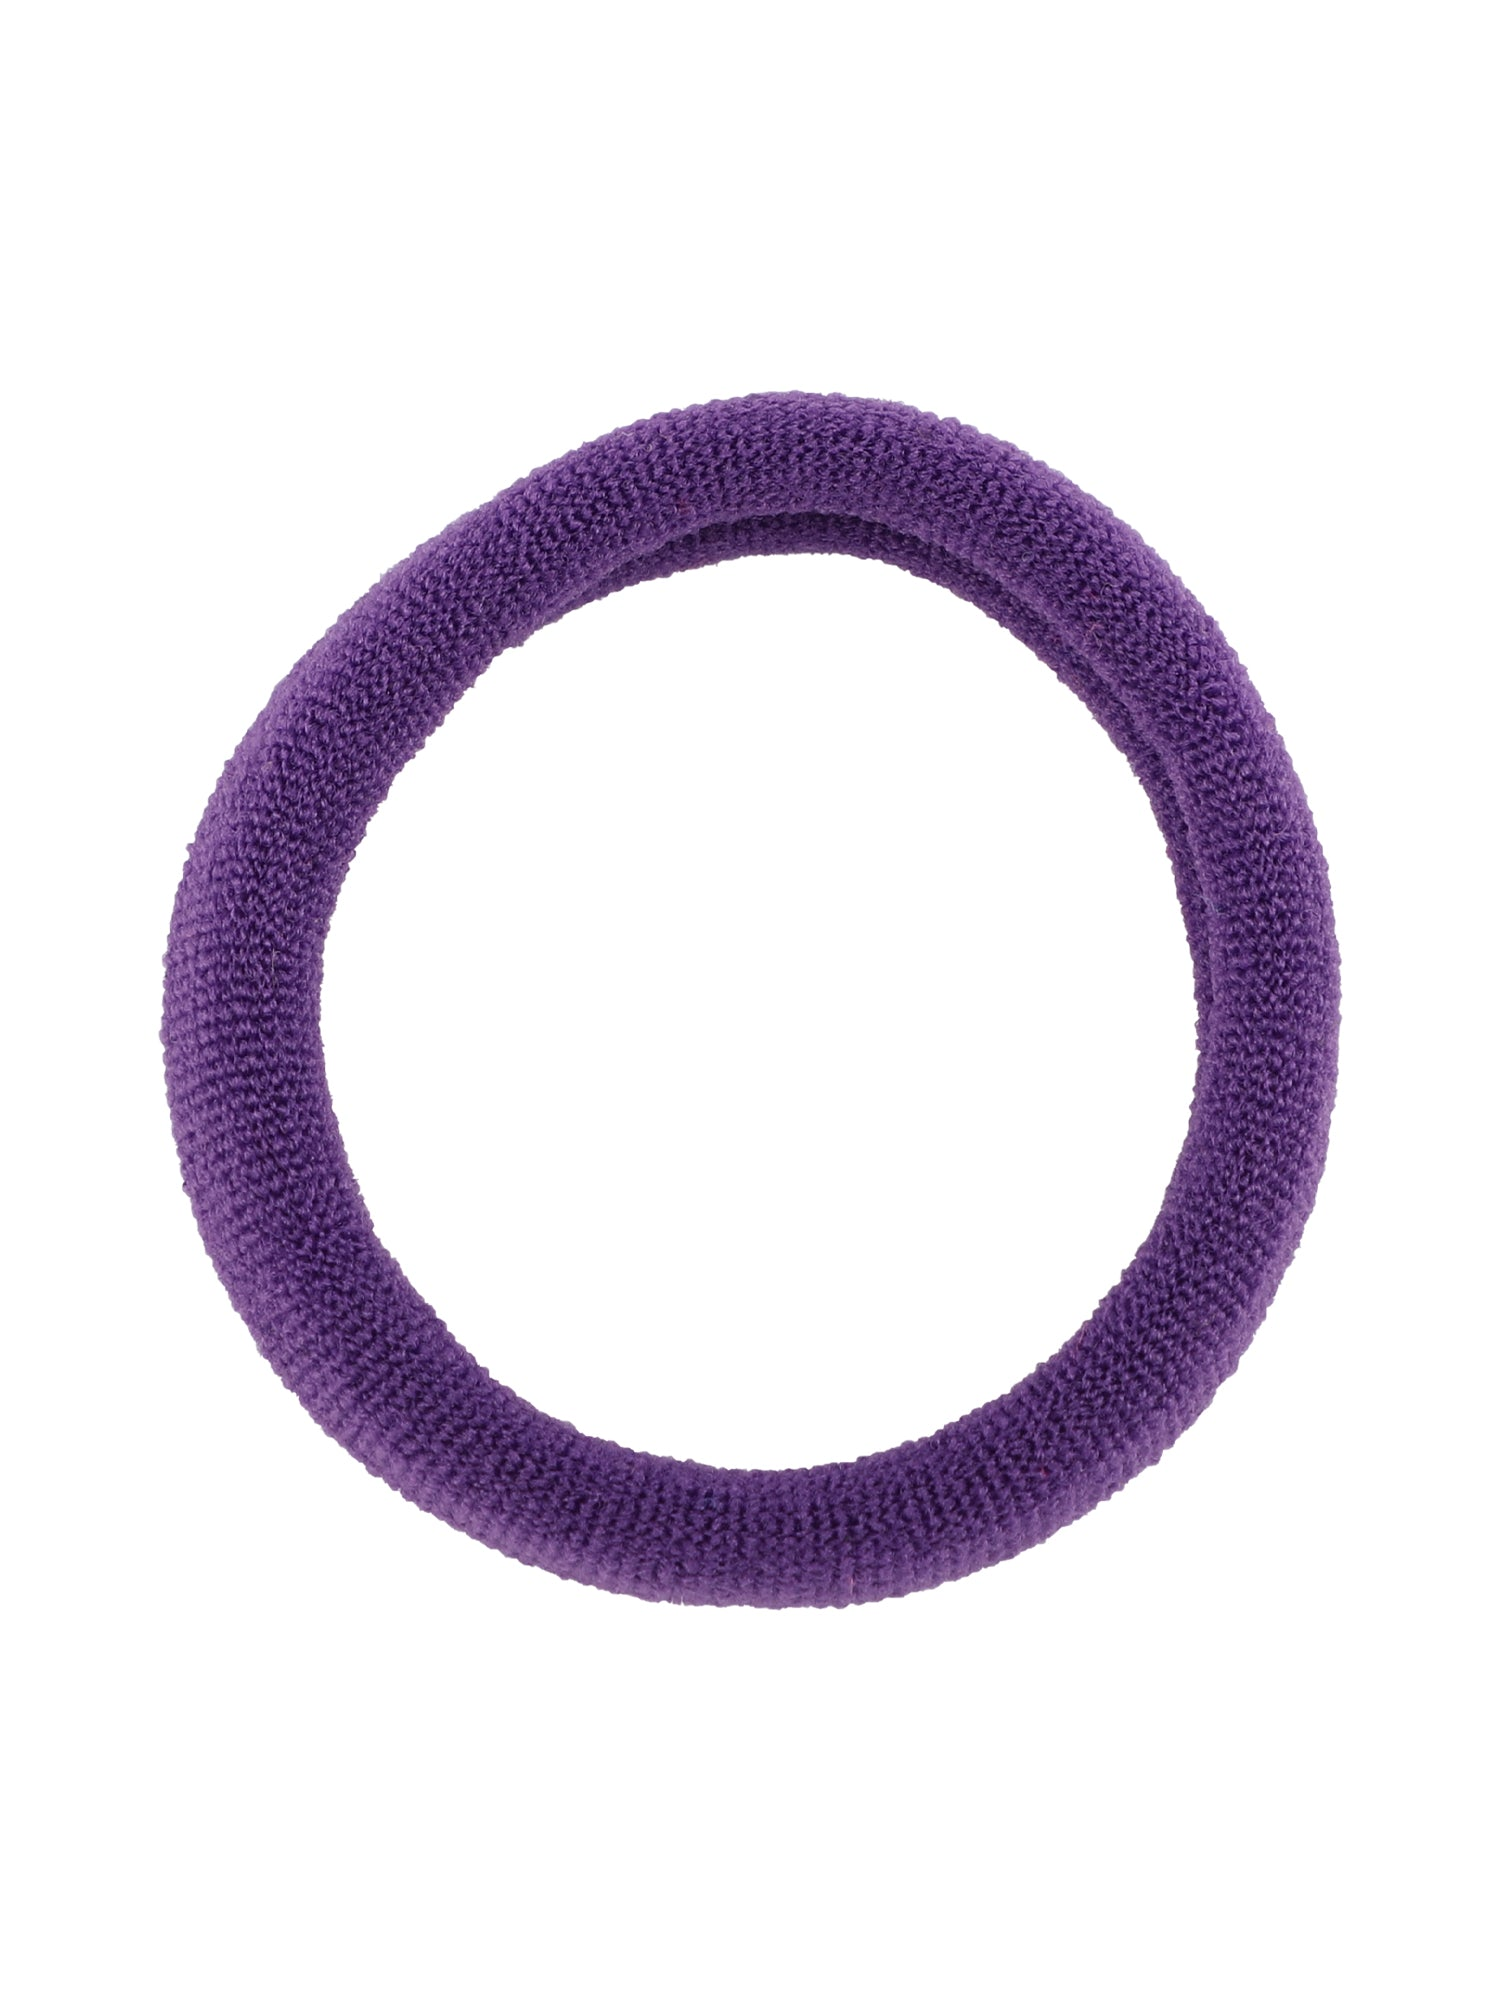 Ombre Hairtie Stack - Pack of 50